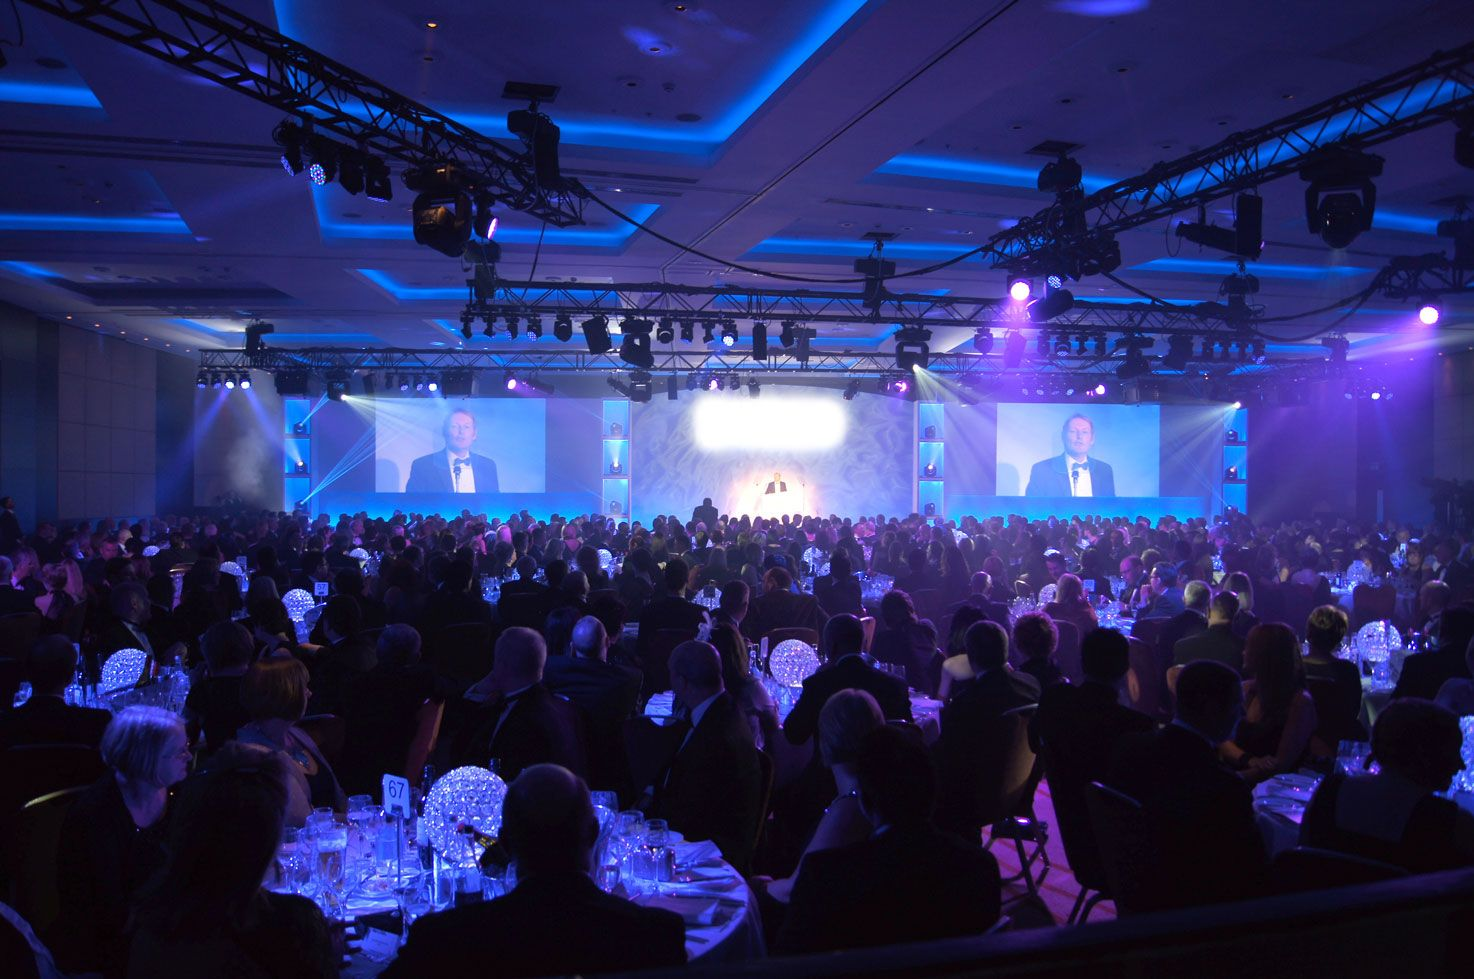 IPS supply lighting u0026 sound equipment for a corporate awards event in London including a full du0026b PA system Martin MAC 101 LED fixtures and Clay Paky ... & IPS supply lighting u0026 sound equipment for a corporate awards event ... azcodes.com